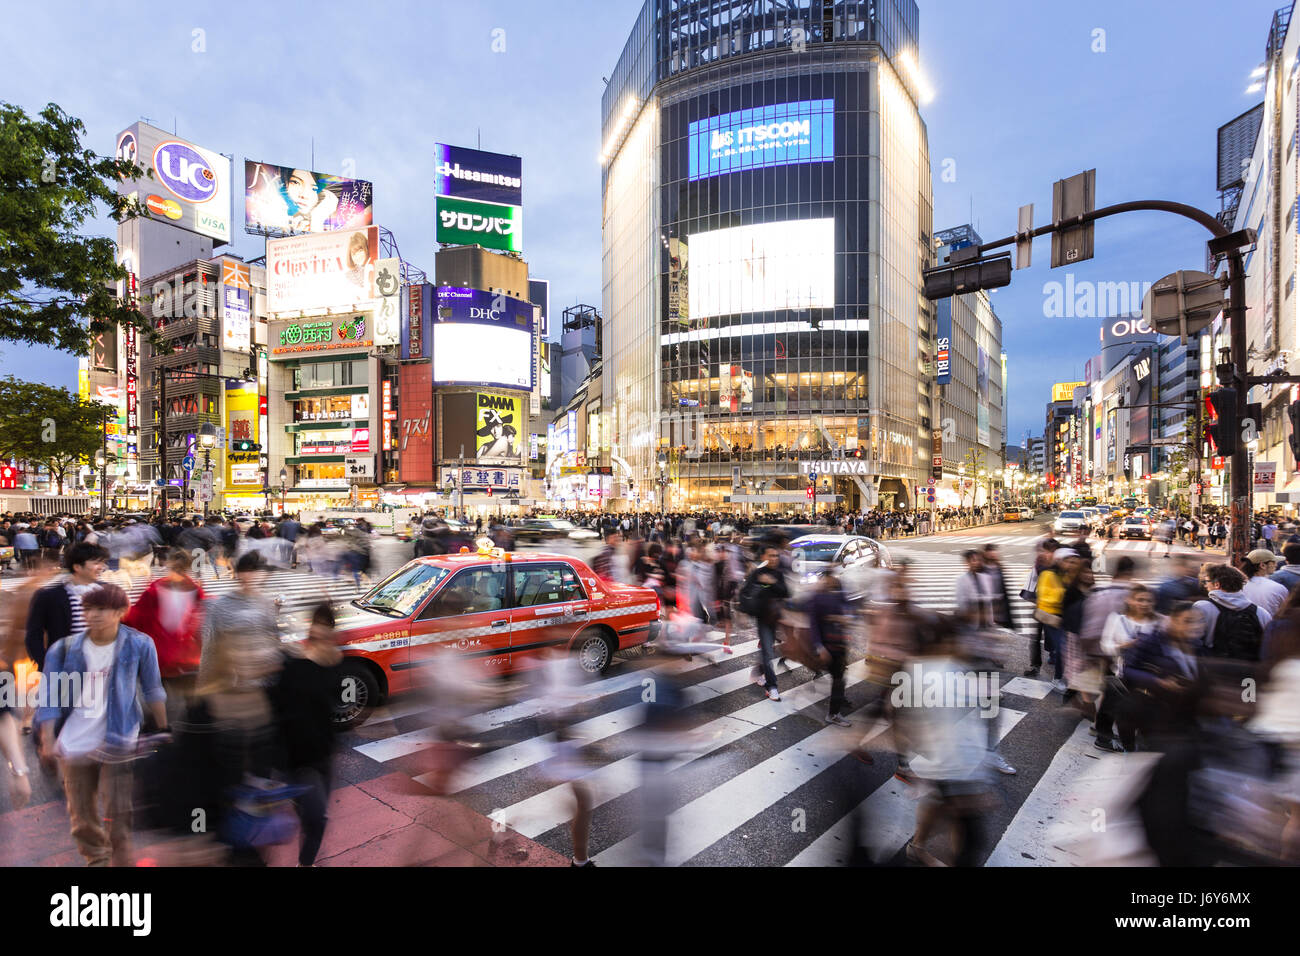 TOKYO - MAY 3, 2017: A taxi is stuck among the crowd crossing the famous Shibuya crossing at night in Tokyo, Japan - Stock Image